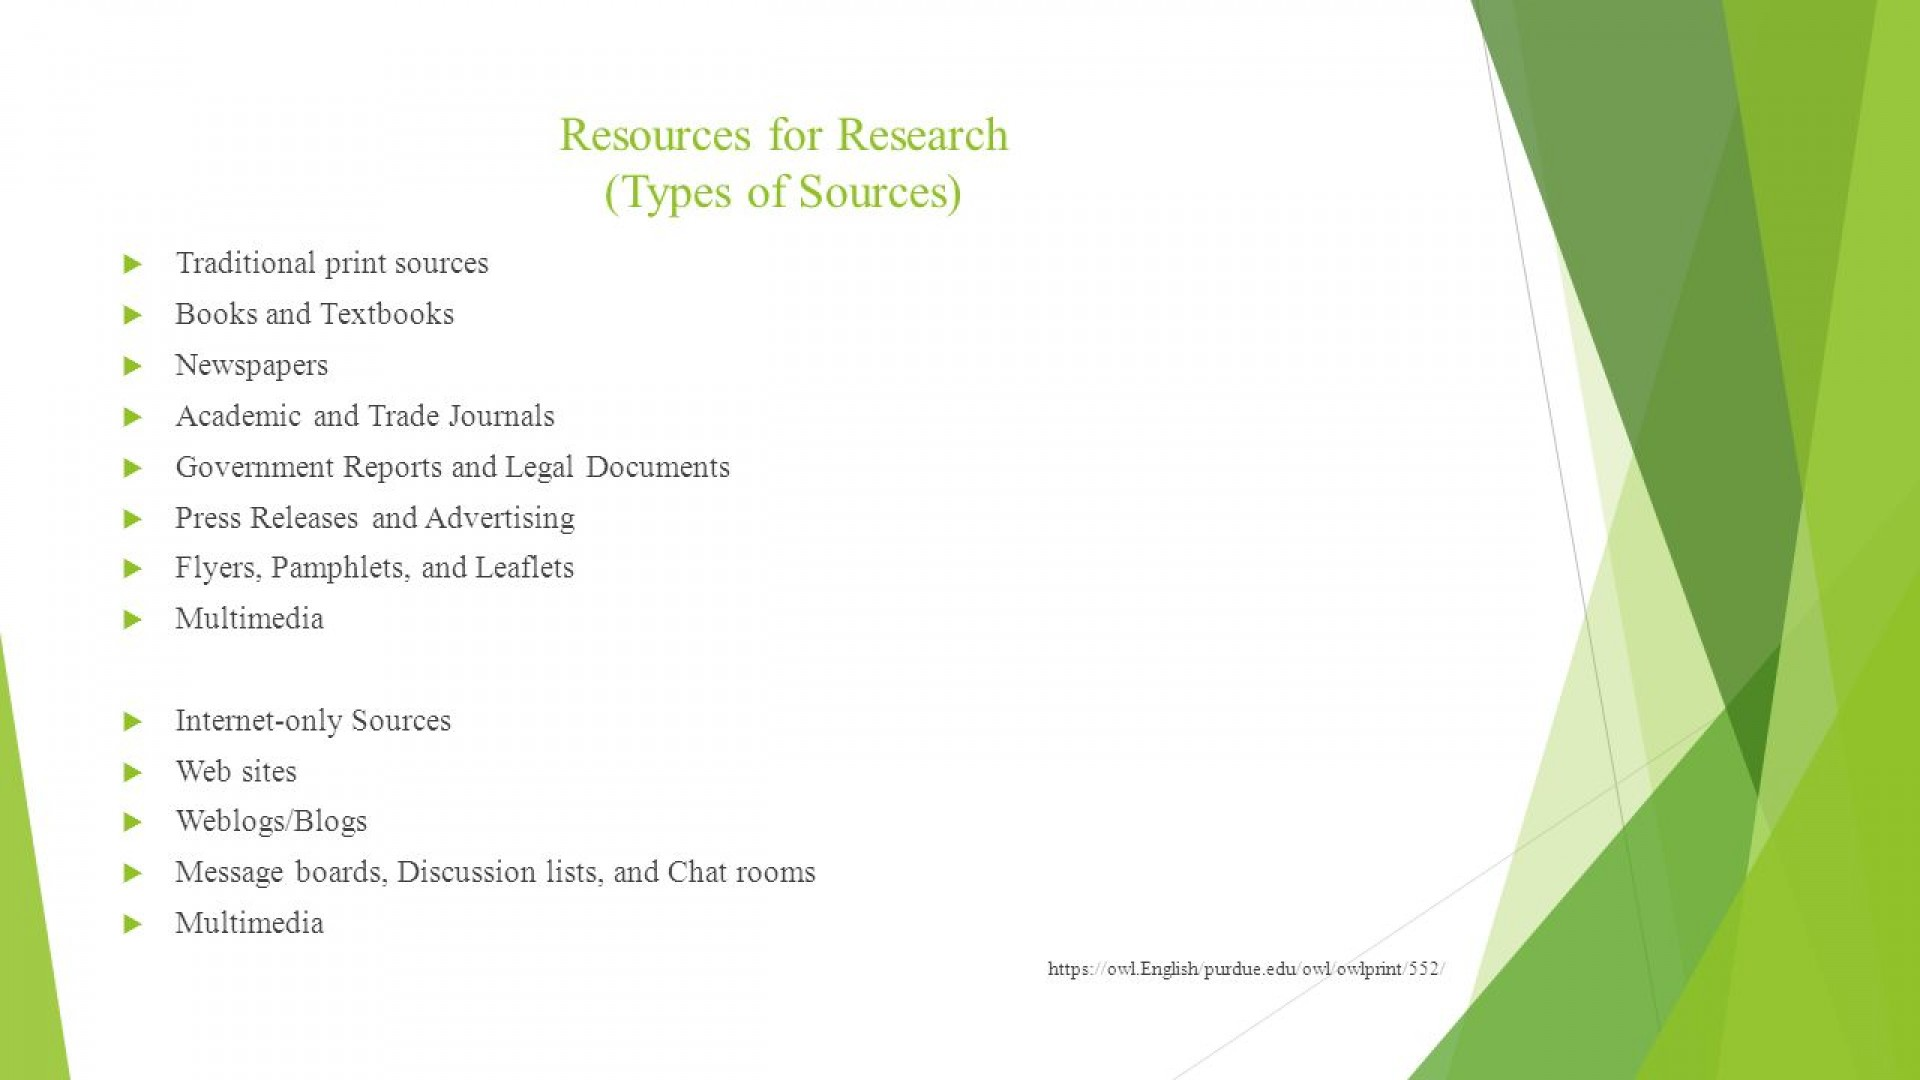 029 Research Paper Credible Sources For High School Slide 3 Singular 1920